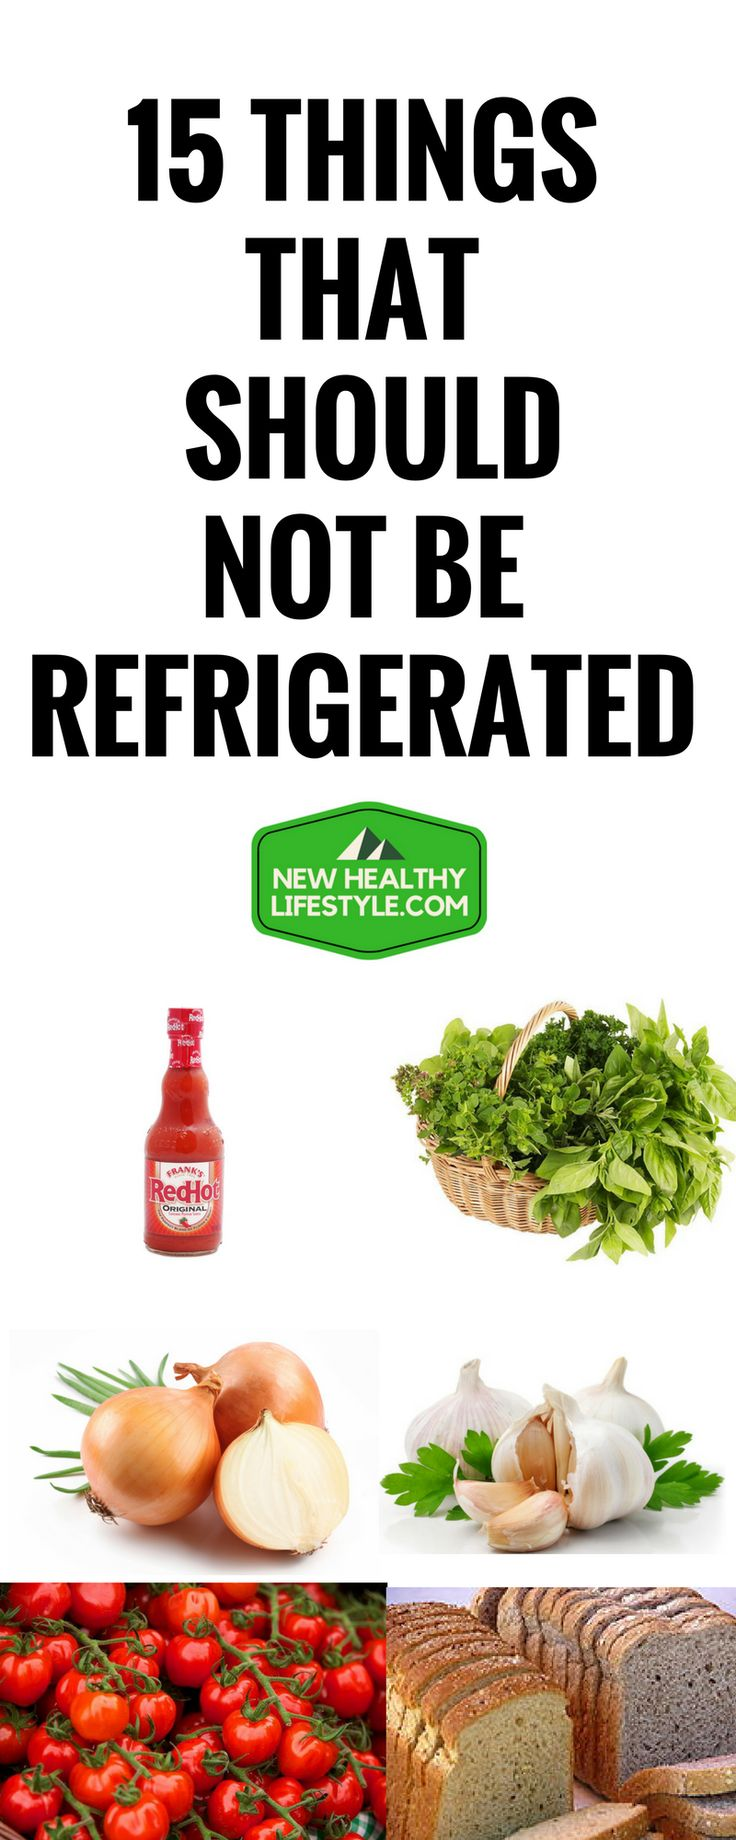 15 THINGS THAT SHOULD NOT BE REFRIGERATED 15 THINGS THAT SHOULD NOT BE REFRIGERATED 15 THINGS THAT SHOULD NOT BE REFRIGERATED